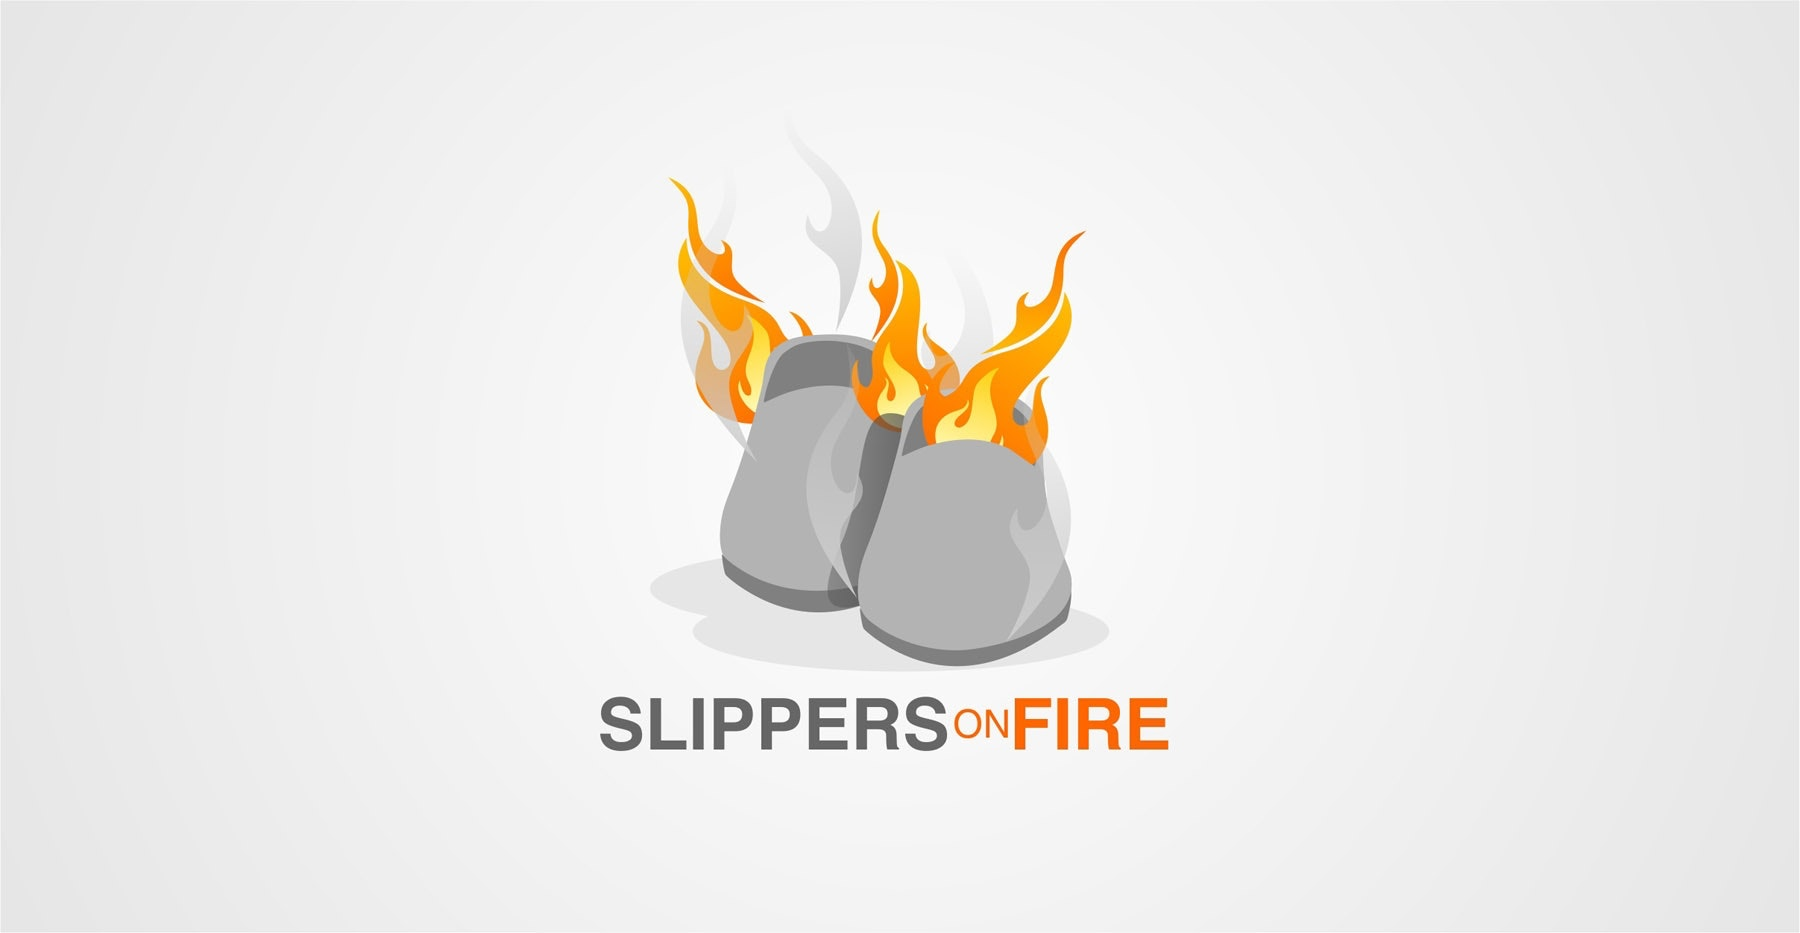 23 slipper on fire logo